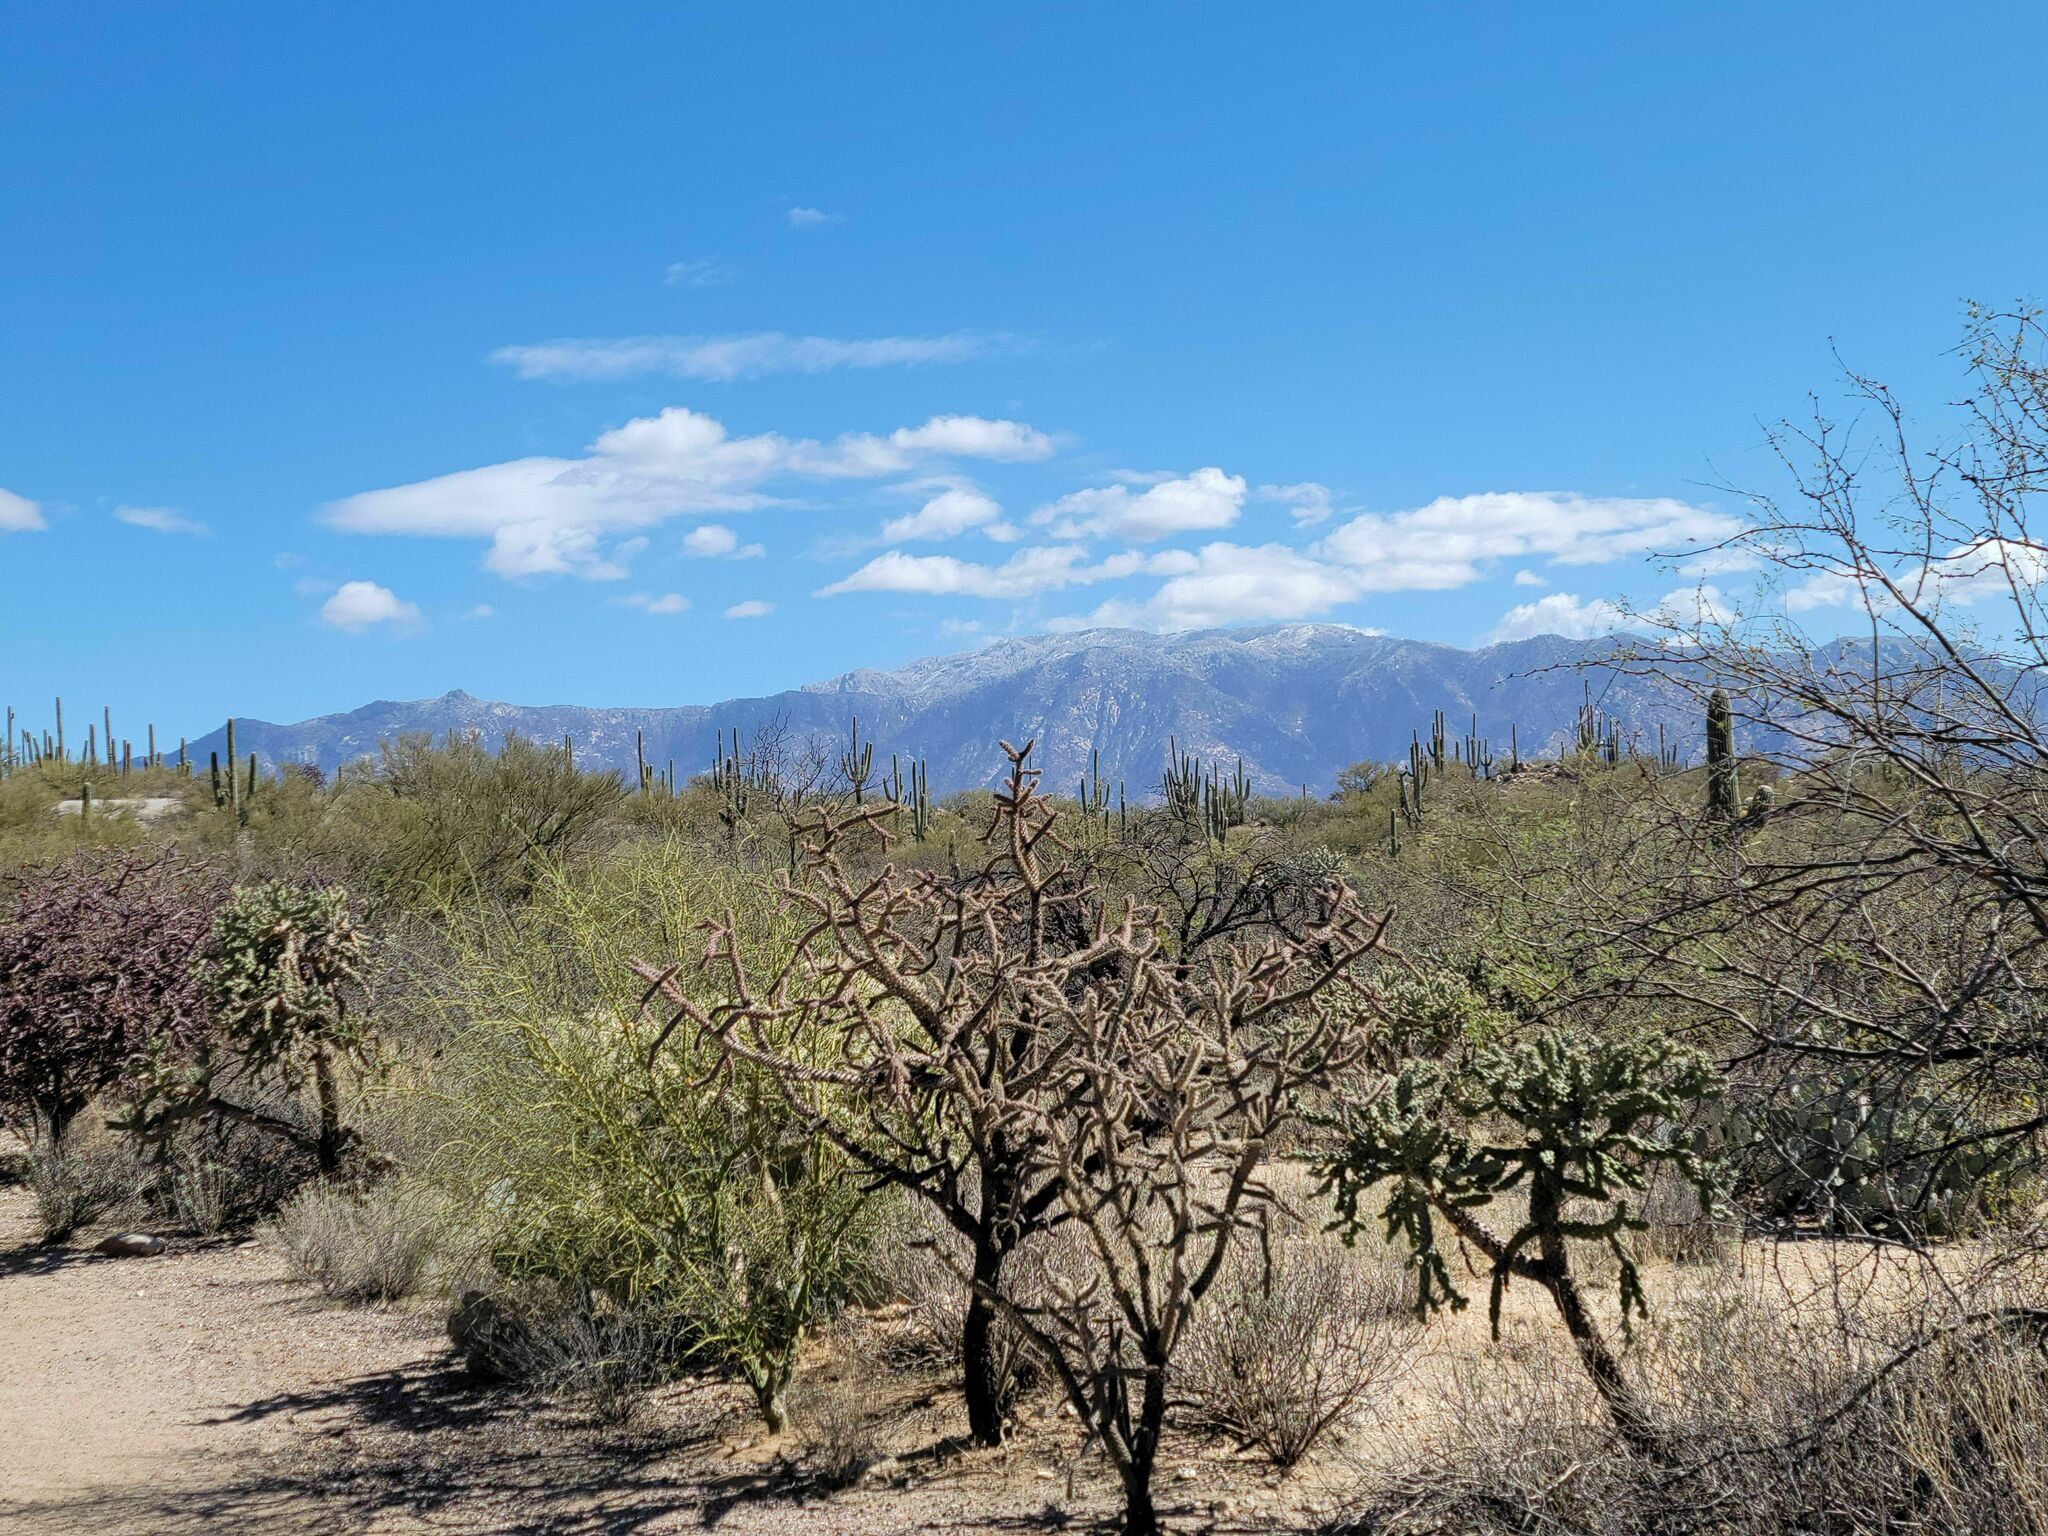 Enjoy Sweeping Mountain Vistas As You Stroll Through The Southern Arizona Wilderness At Honeybee Canyon Park